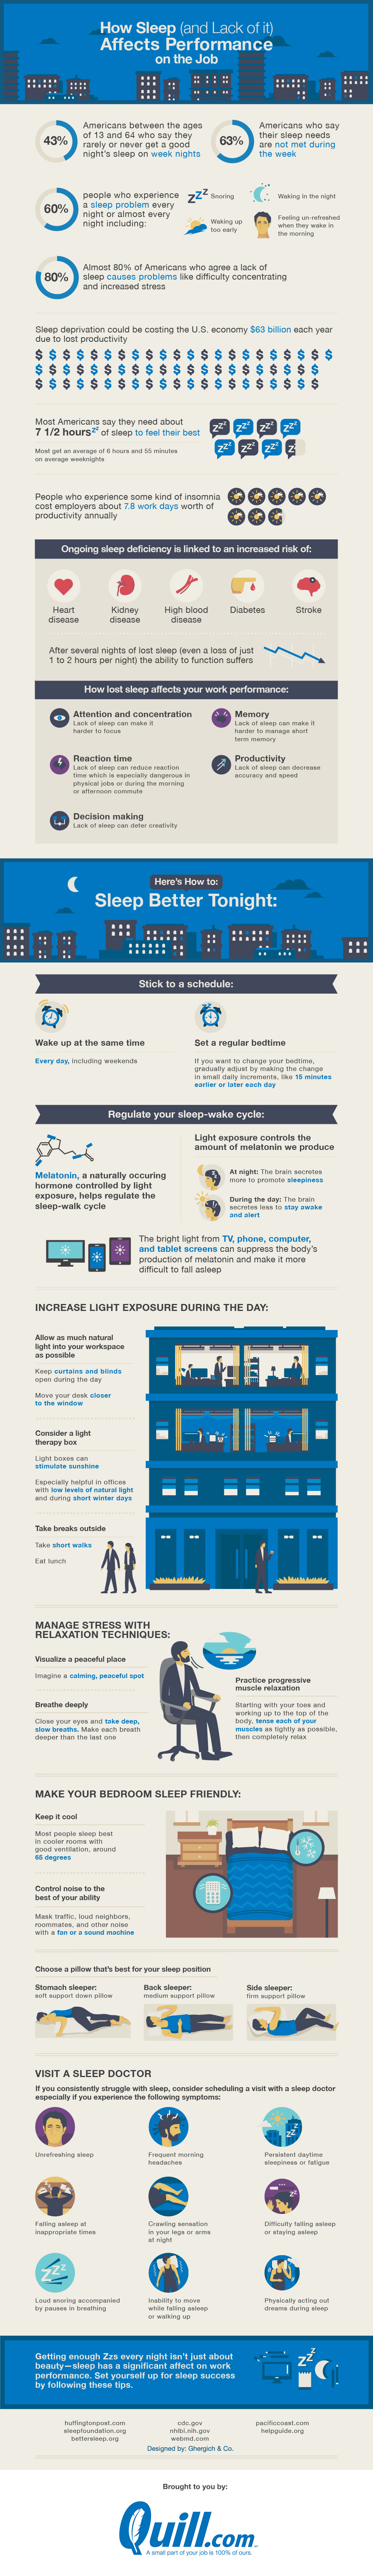 The Importance of a Regulated Sleep Cycle, and How It Impacts Job Performance - Infographic